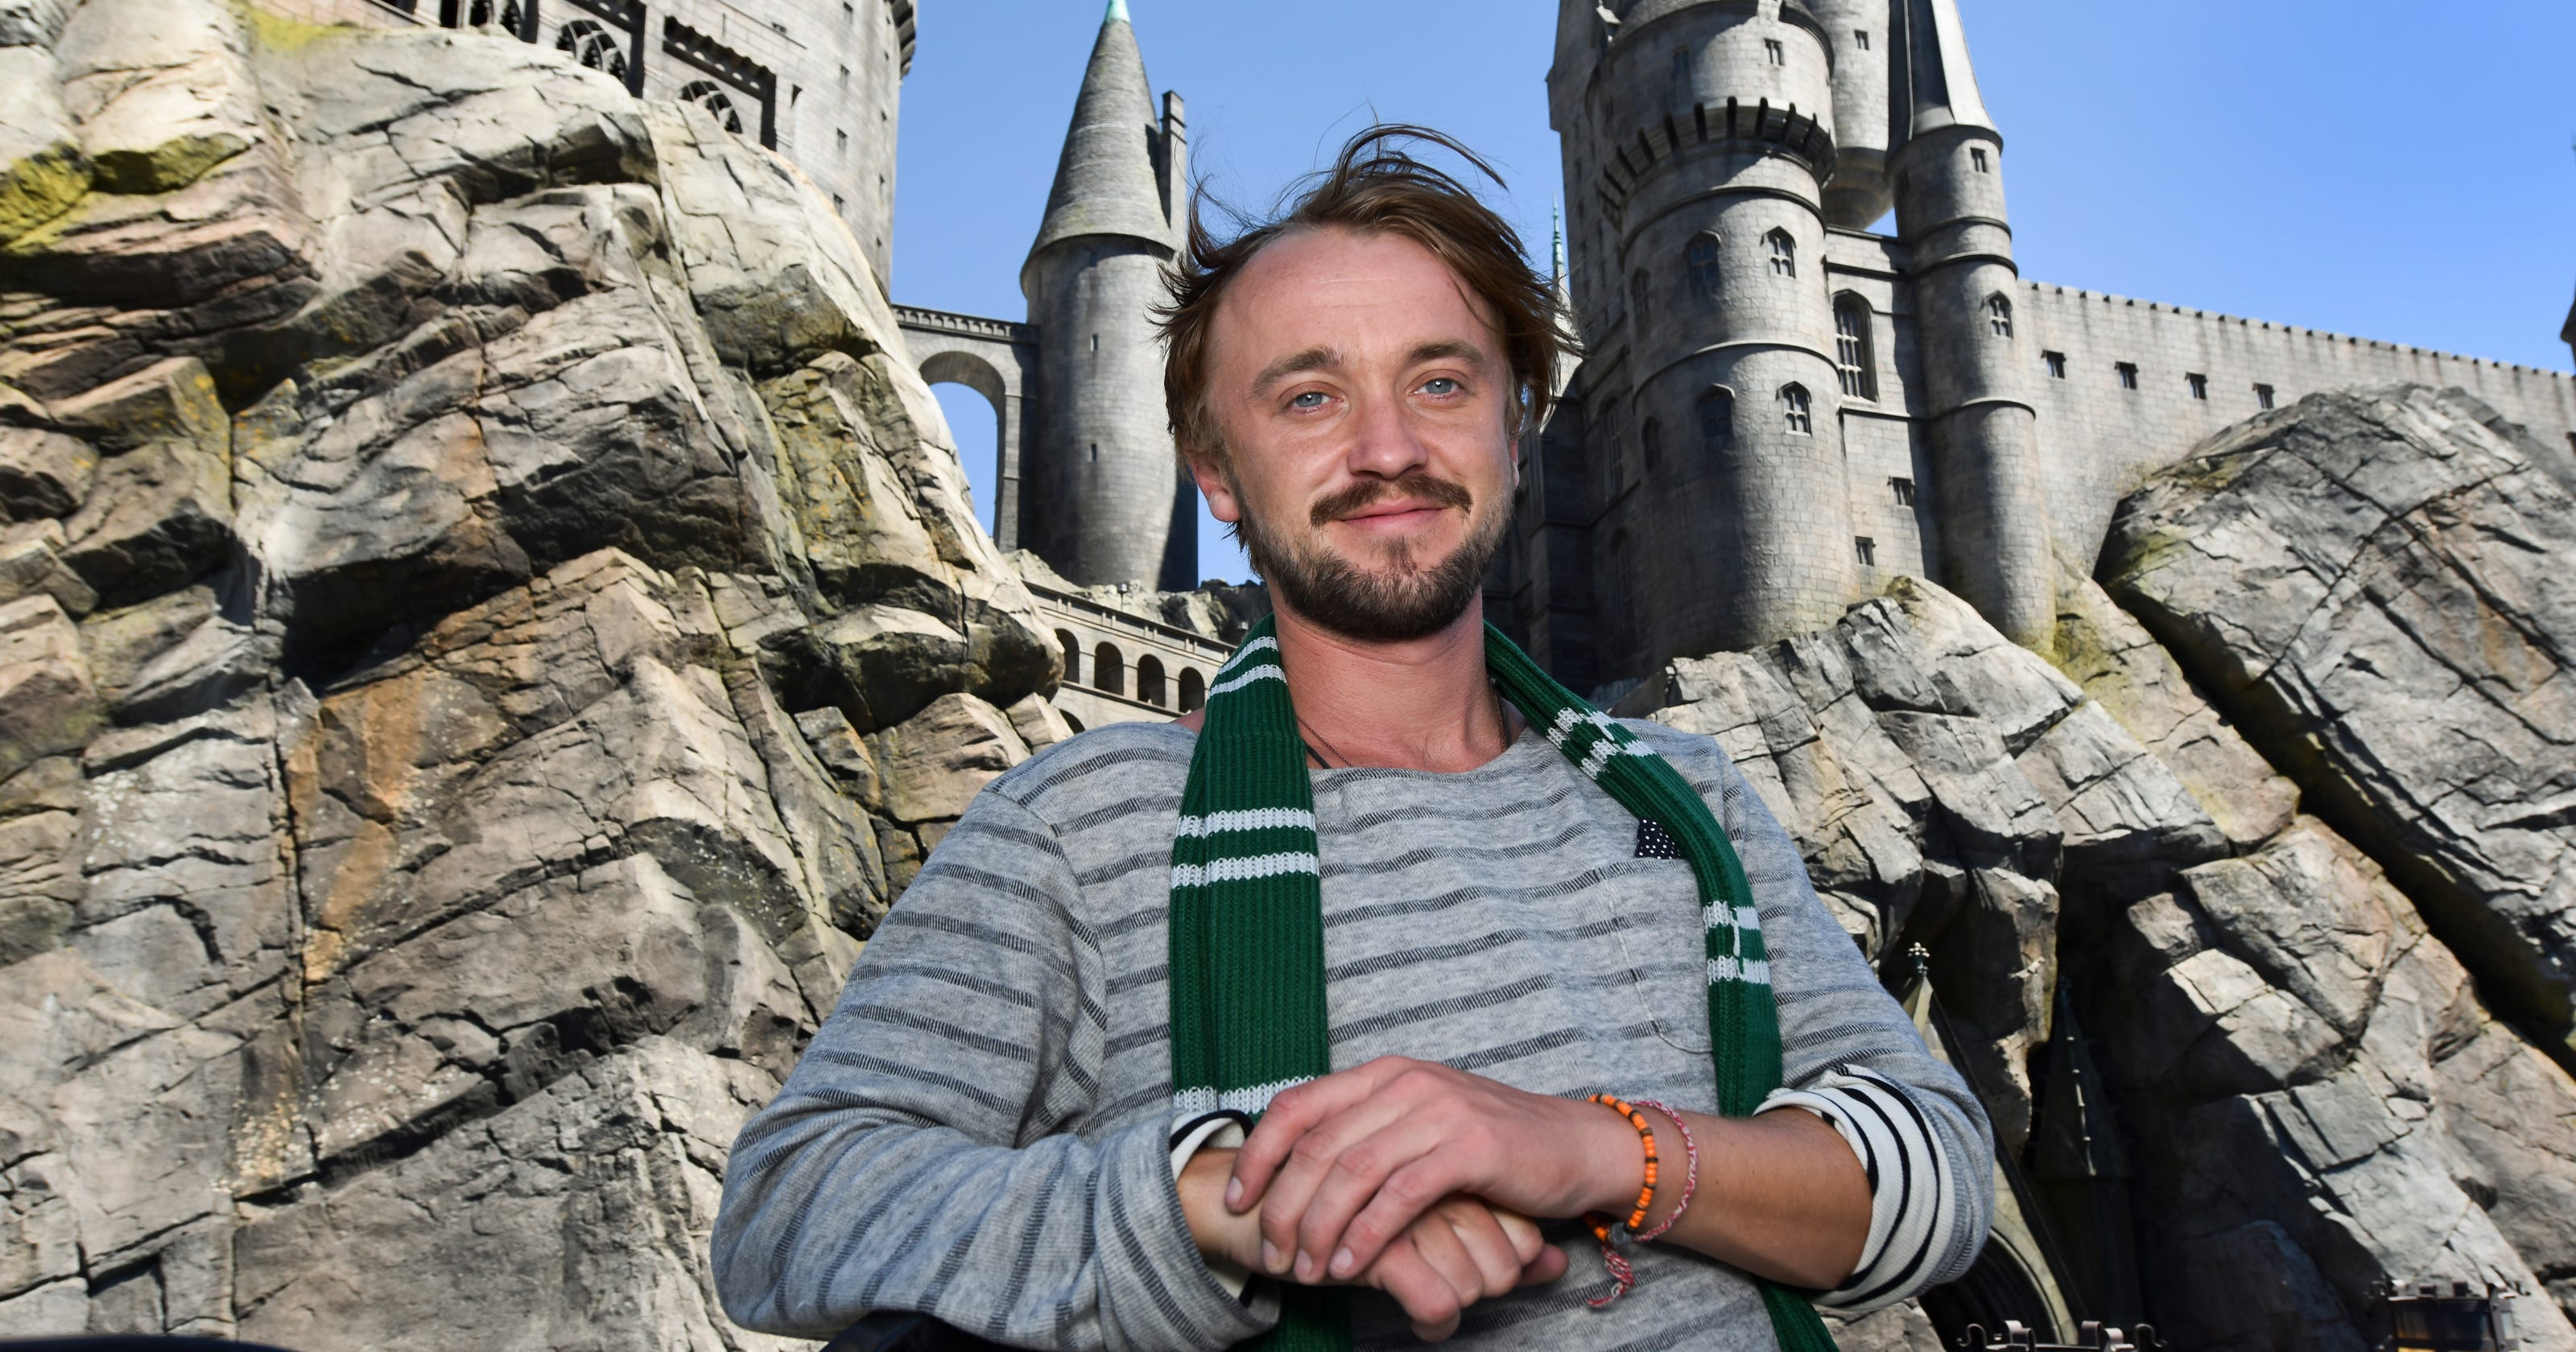 Tom Felton (aka Draco Malfoy) takes us through 'Harry Potter' world